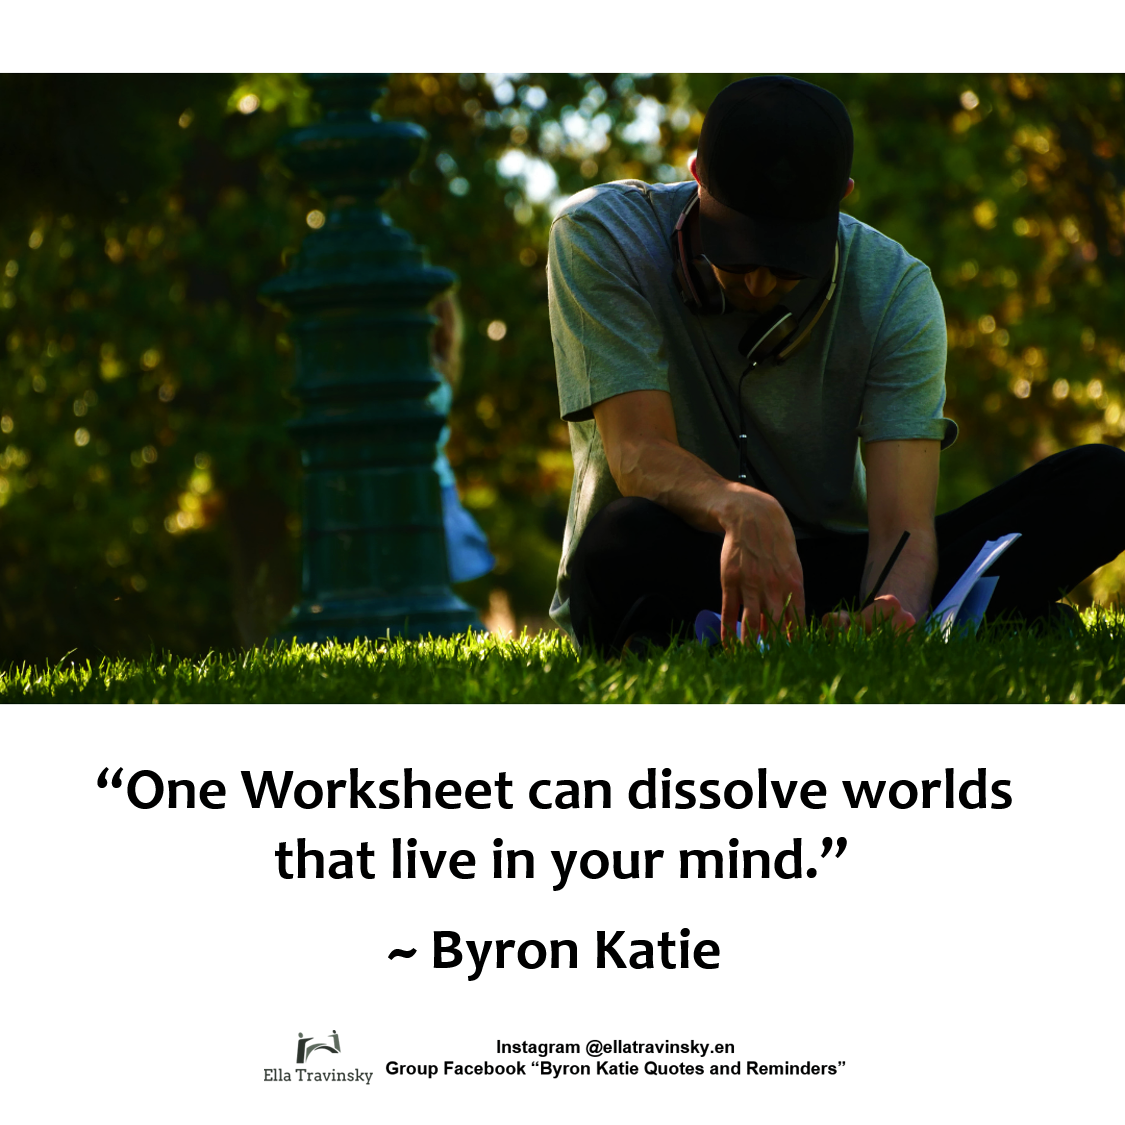 One Worksheet Can Dissolve Worlds That Live In Your Mind